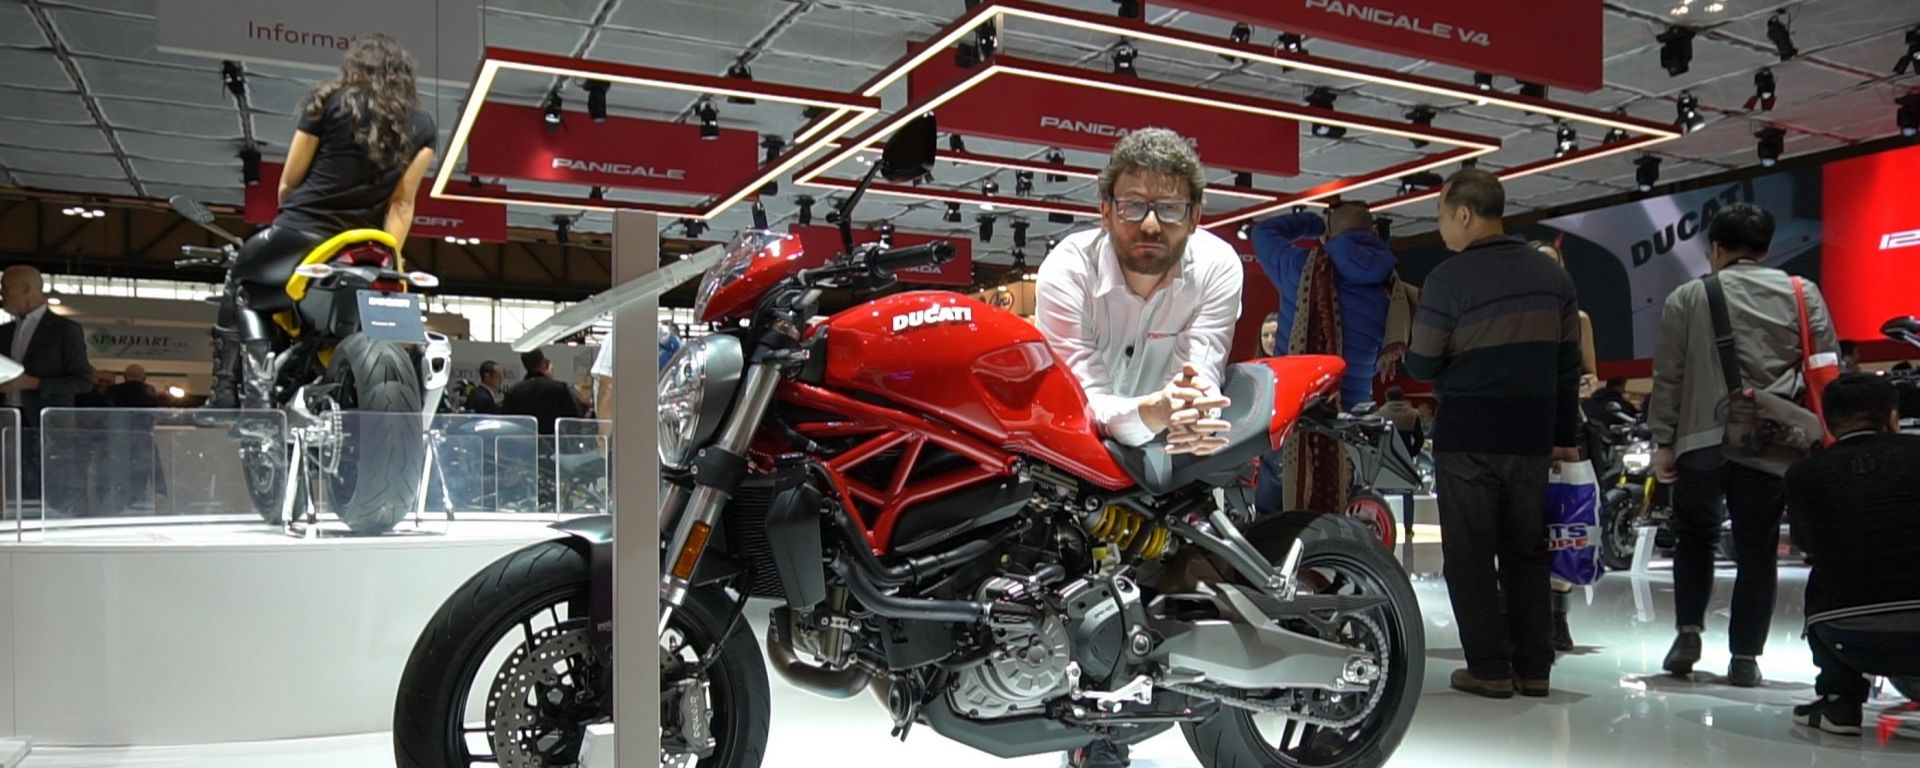 Ducati Monster 821: il mostro si rinnova come il fratellone [VIDEO]